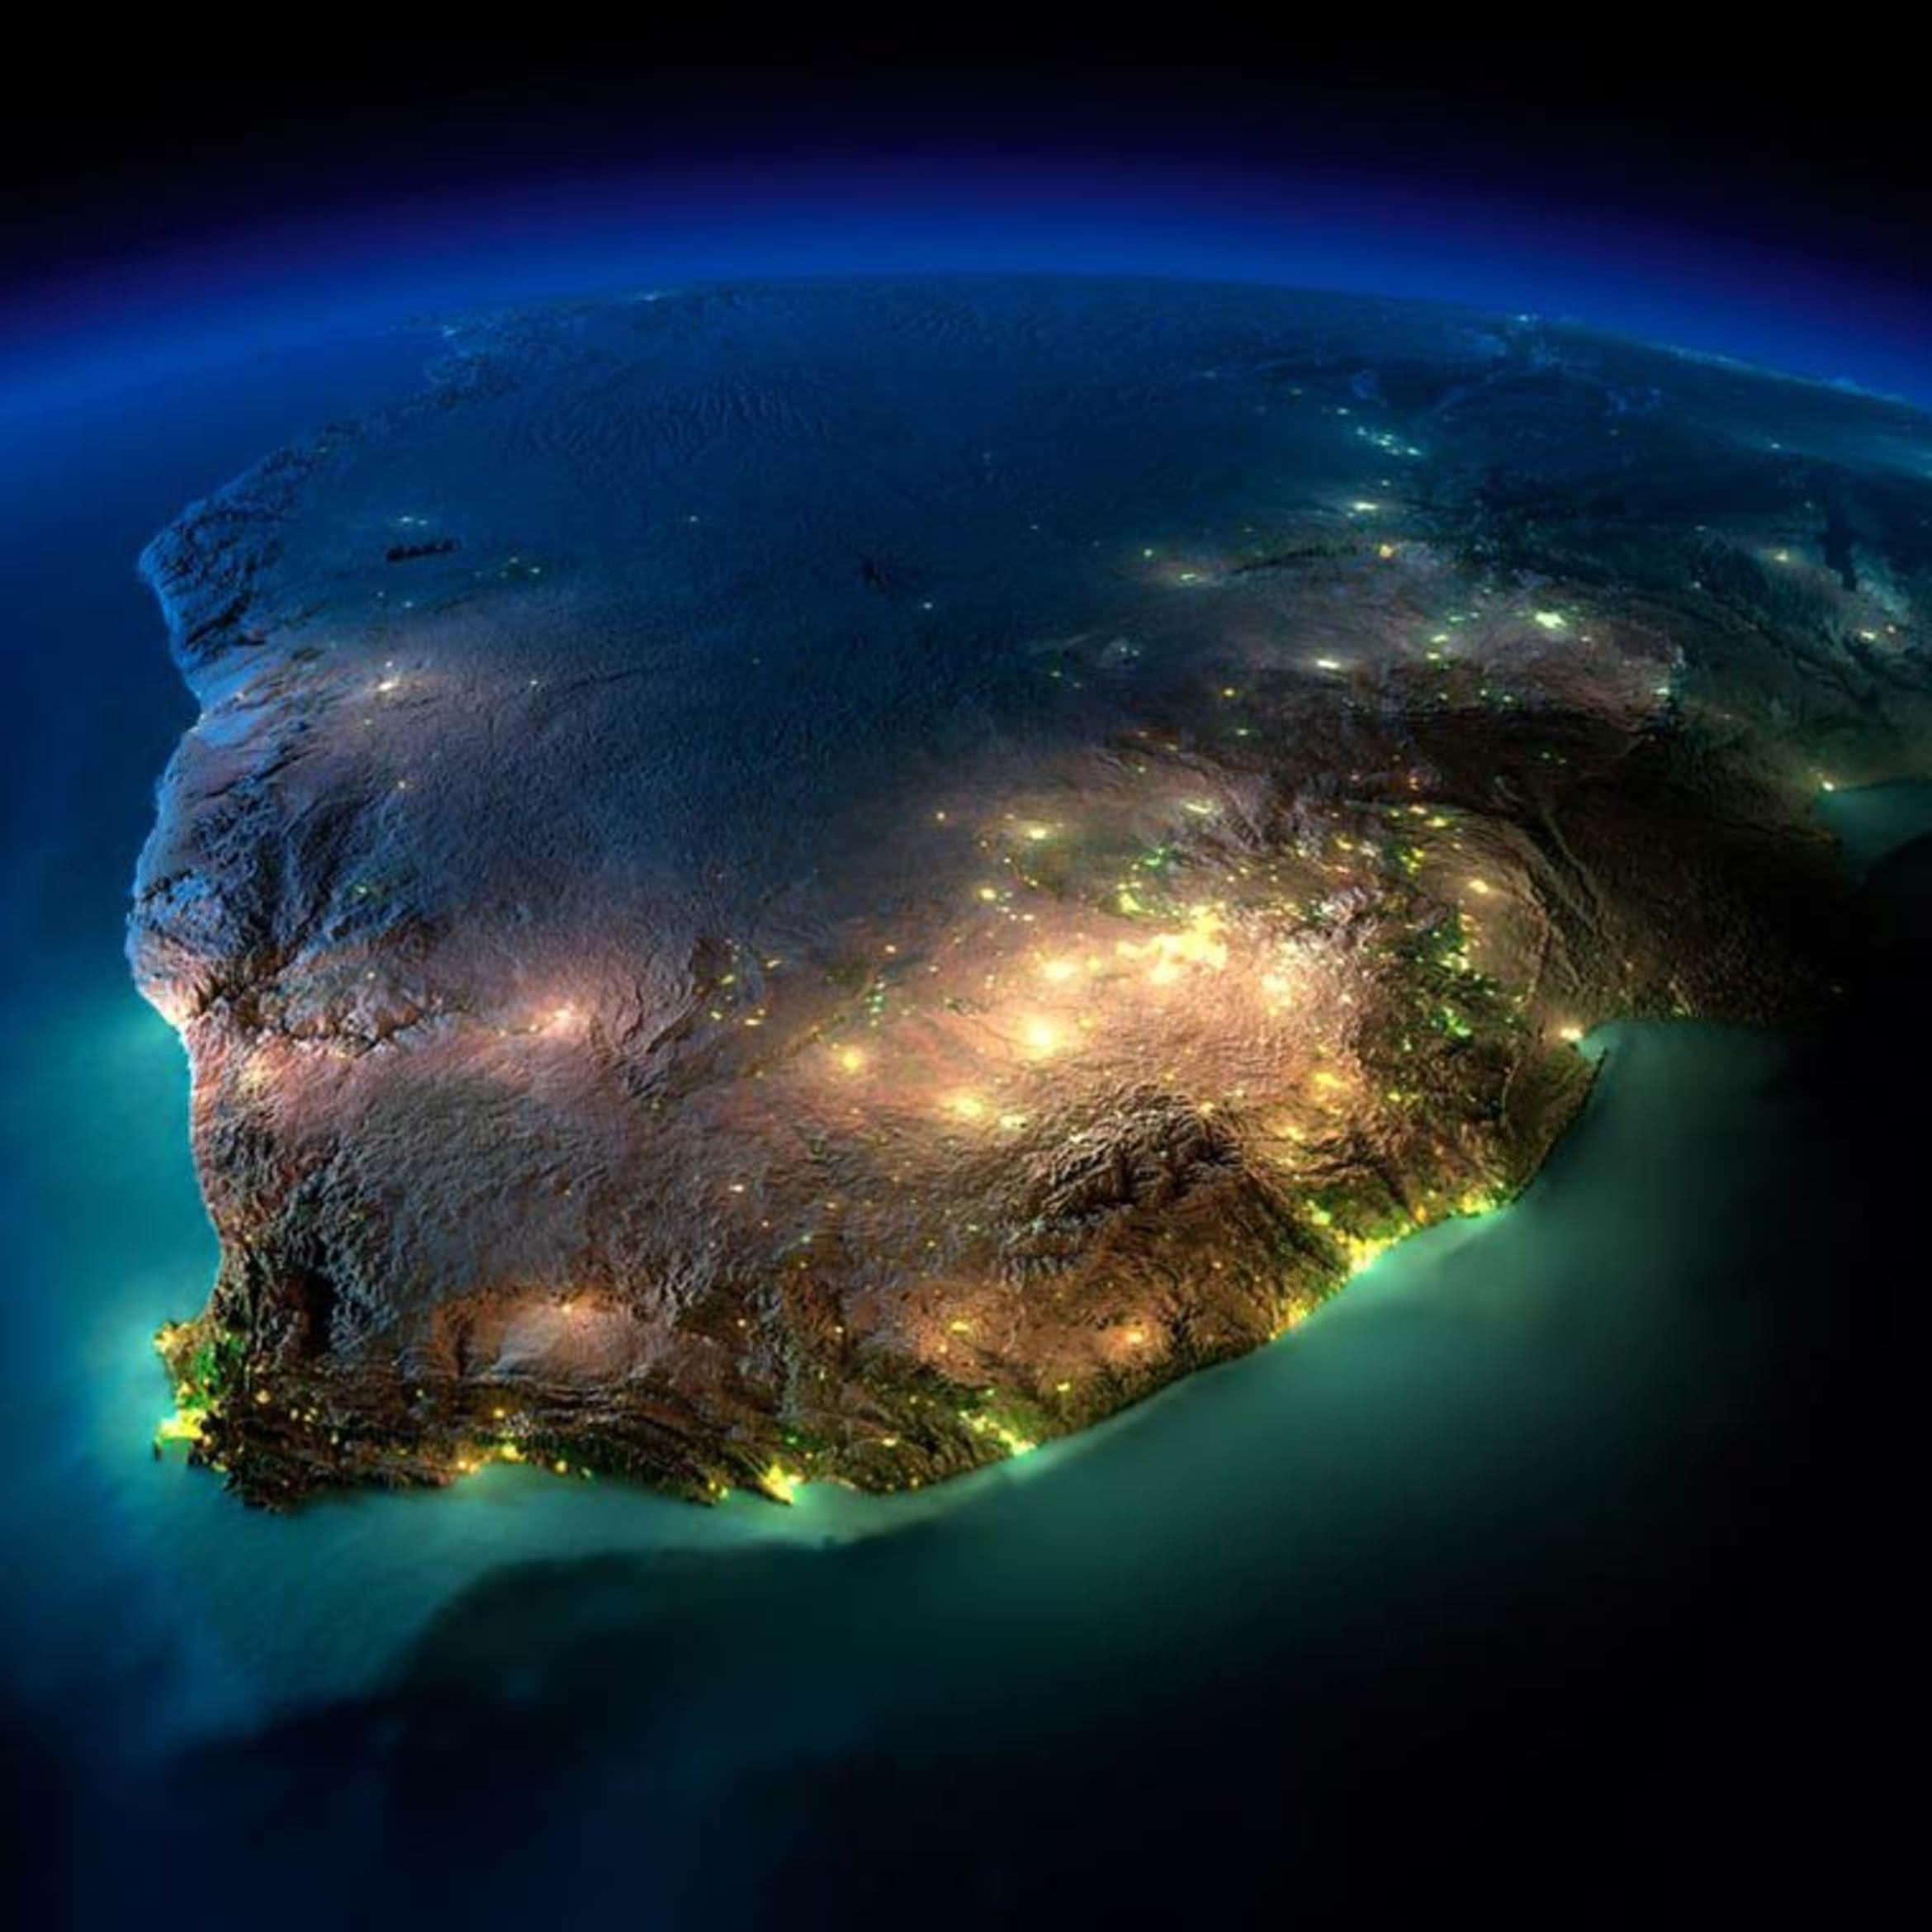 Relief Map Of Southern Africa.Exaggerated Relief Map Of Southern Africa At Night